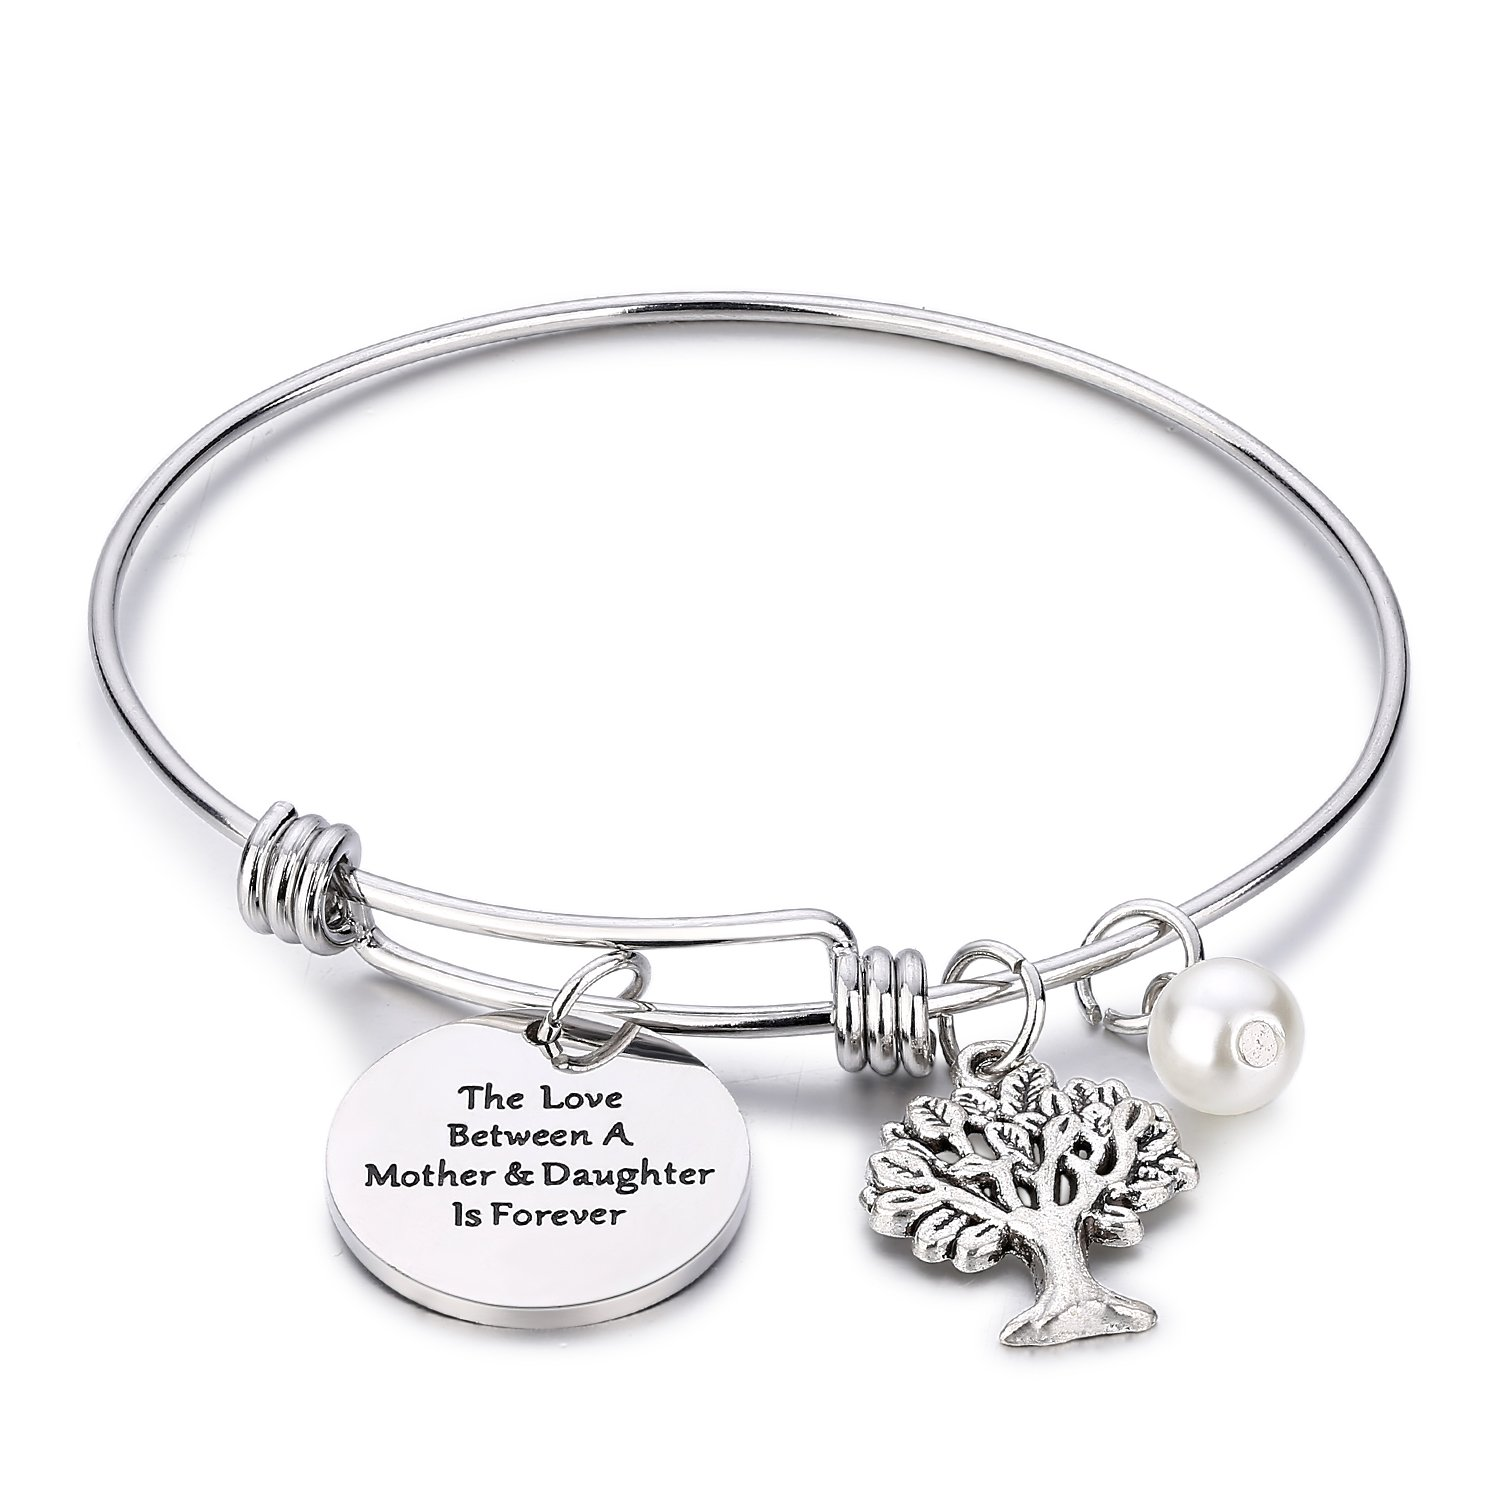 CJ&M Family Tree Bracelet The Love Between Mother and Daughter is Forever Tree of Life Bracelet Mother Gift Bangle, Christmas Gifts,Mother's Day Gifts Mother's Day Gifts B01MS3UHQE_US